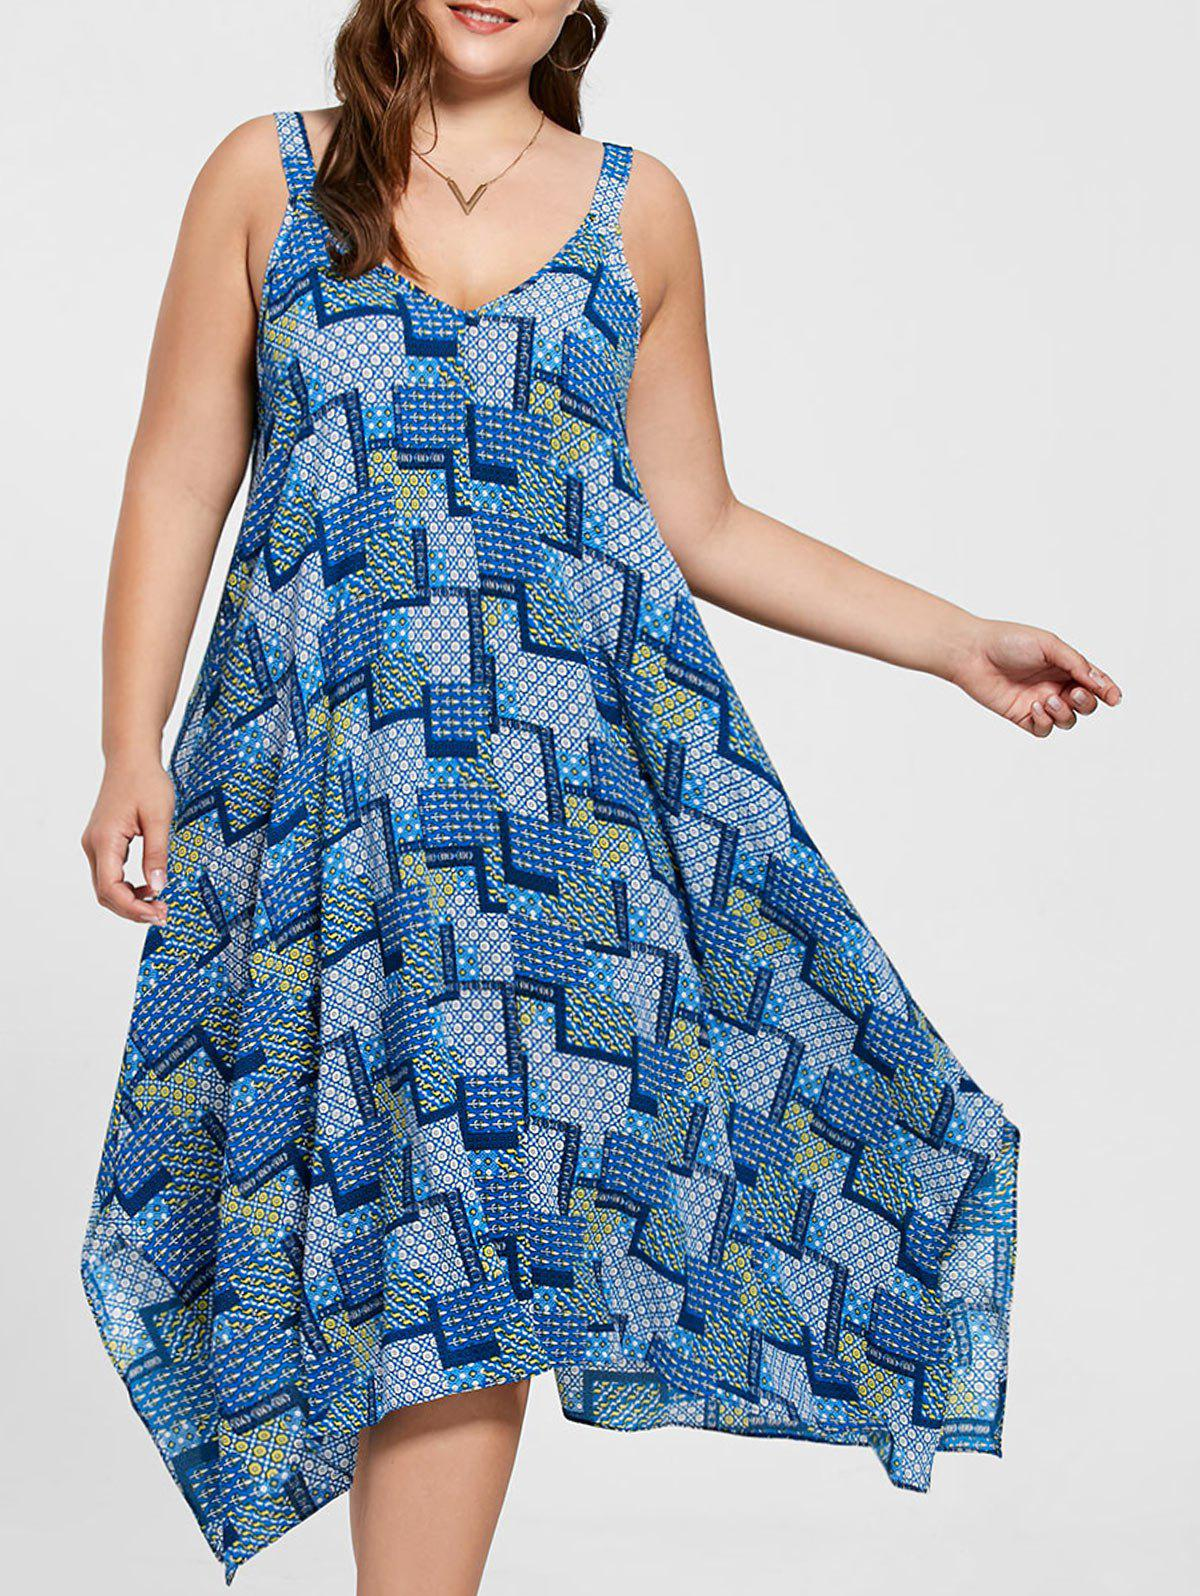 Spaghetti Strap Geometric Printed Plus Size Handkerchief DressWOMEN<br><br>Size: 5XL; Color: BLUE; Style: Casual; Material: Polyester; Silhouette: Asymmetrical; Dresses Length: Mid-Calf; Neckline: Spaghetti Strap; Sleeve Length: Sleeveless; Pattern Type: Geometric; With Belt: No; Season: Summer; Weight: 0.2700kg; Package Contents: 1 x Dress;